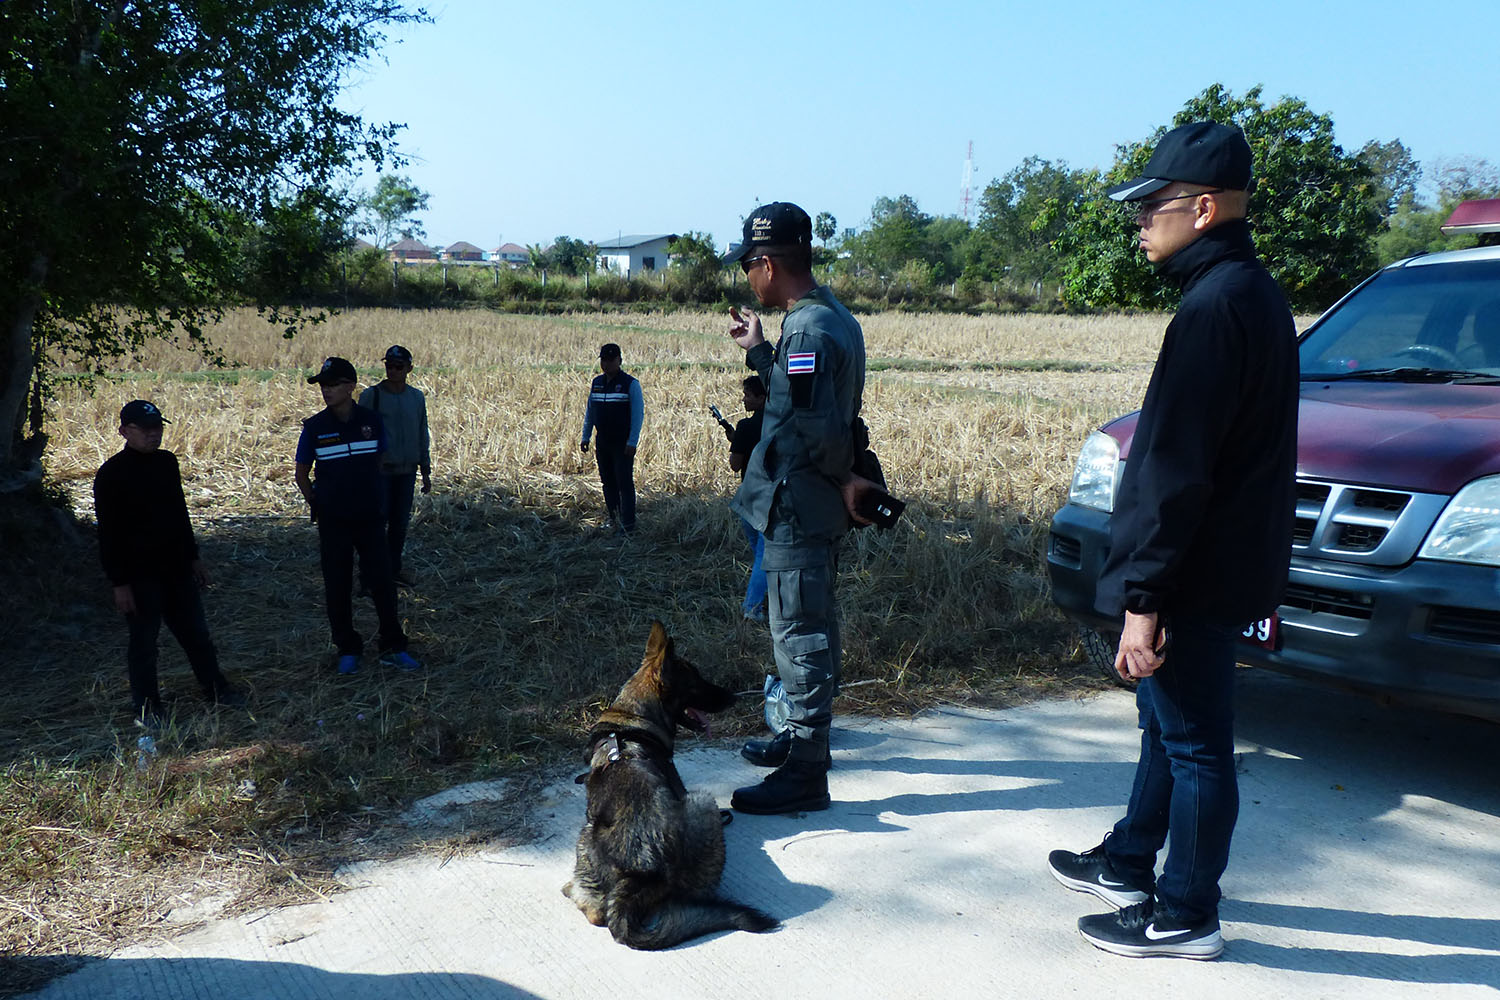 Police in Mukdahan use sniffer dogs to go after an Uighur migrant escaping from an immigration detention facility last week. (Photo by Chuchart Treeprapakorn)